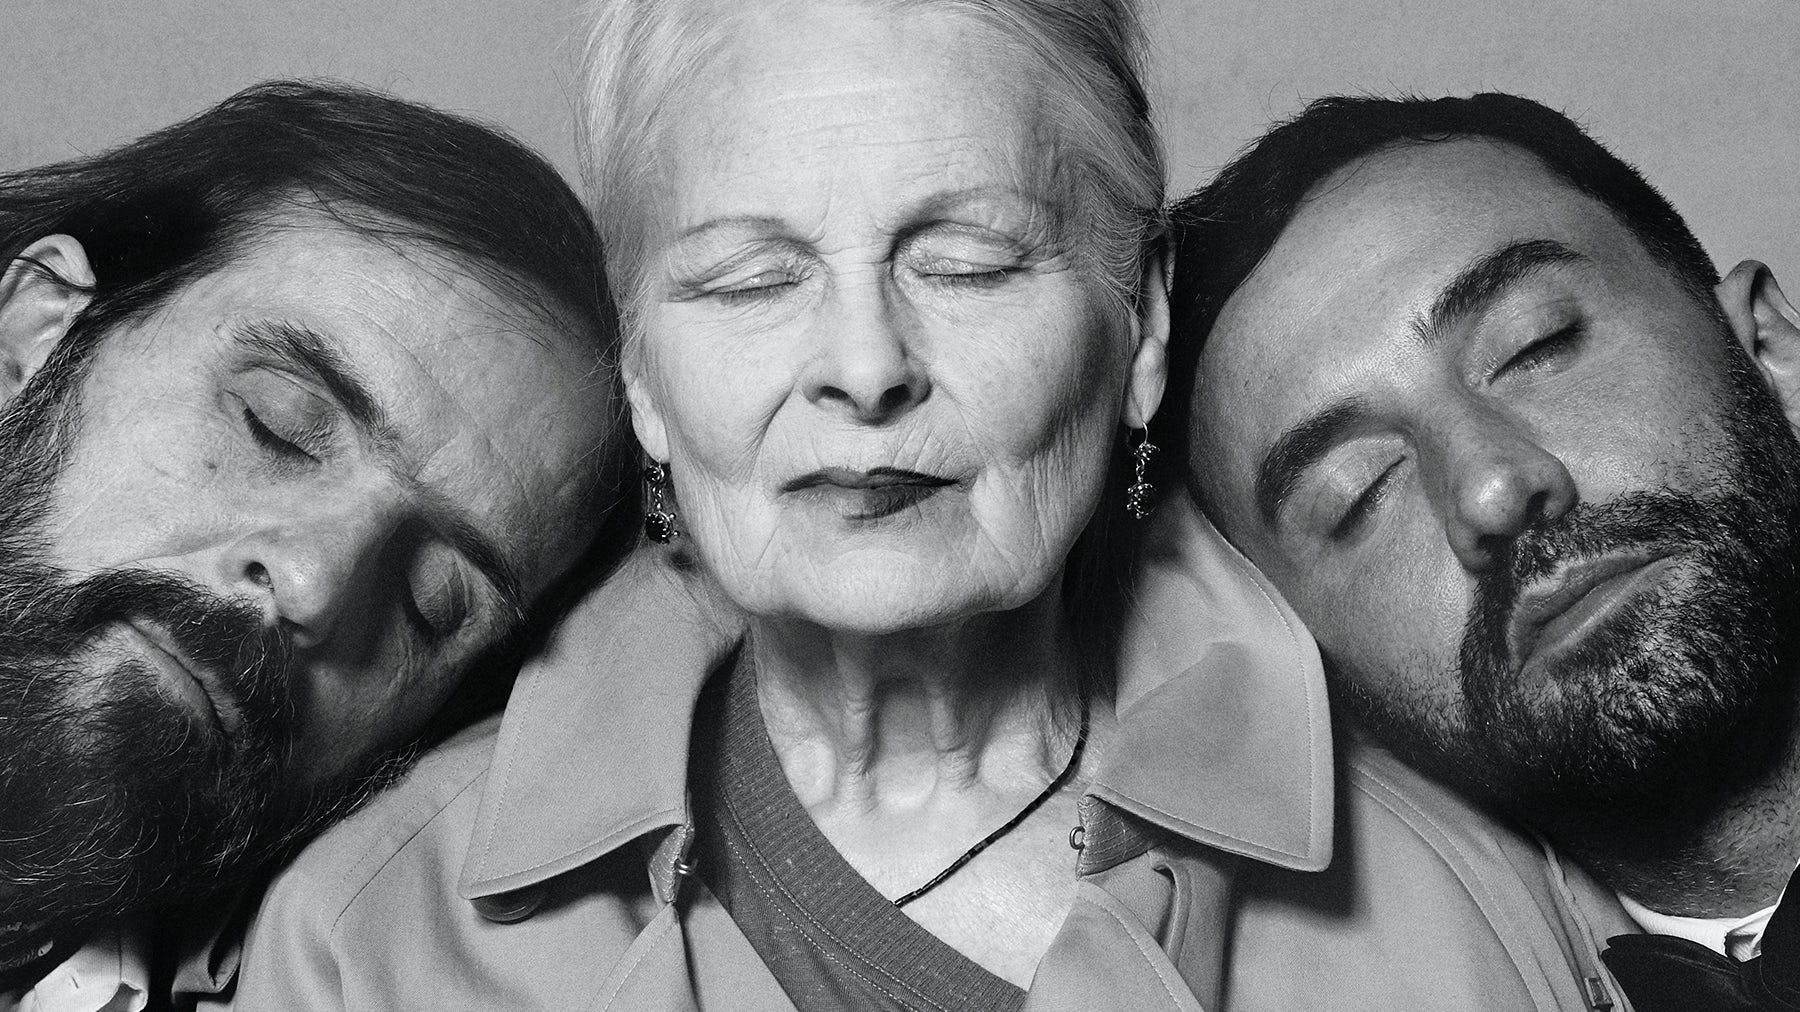 Andreas Kronthaler, Vivienne Westwood and Riccardo Tisci | Photo: Brett Lloyd for Burberry